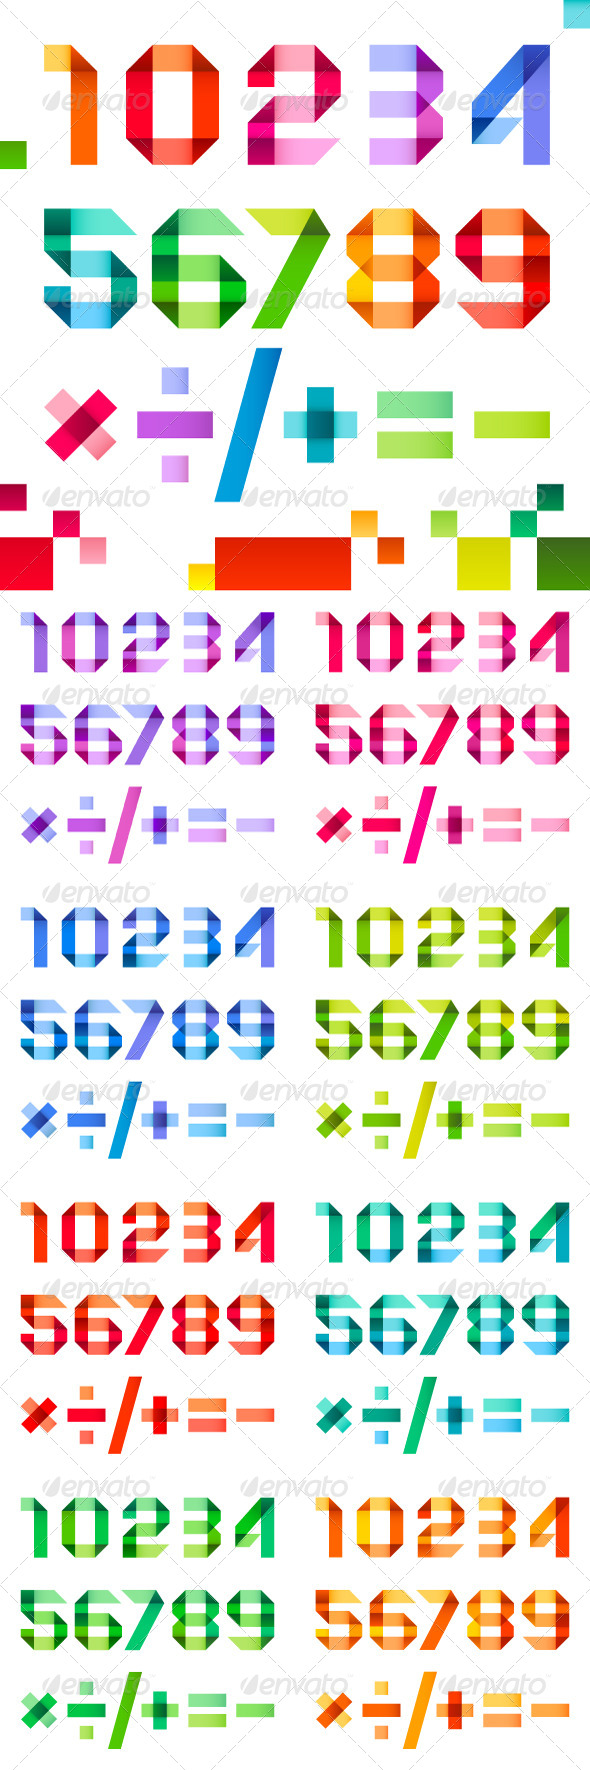 GraphicRiver Spectral Numbers Folded of Ribbon Colored Paper 4234749